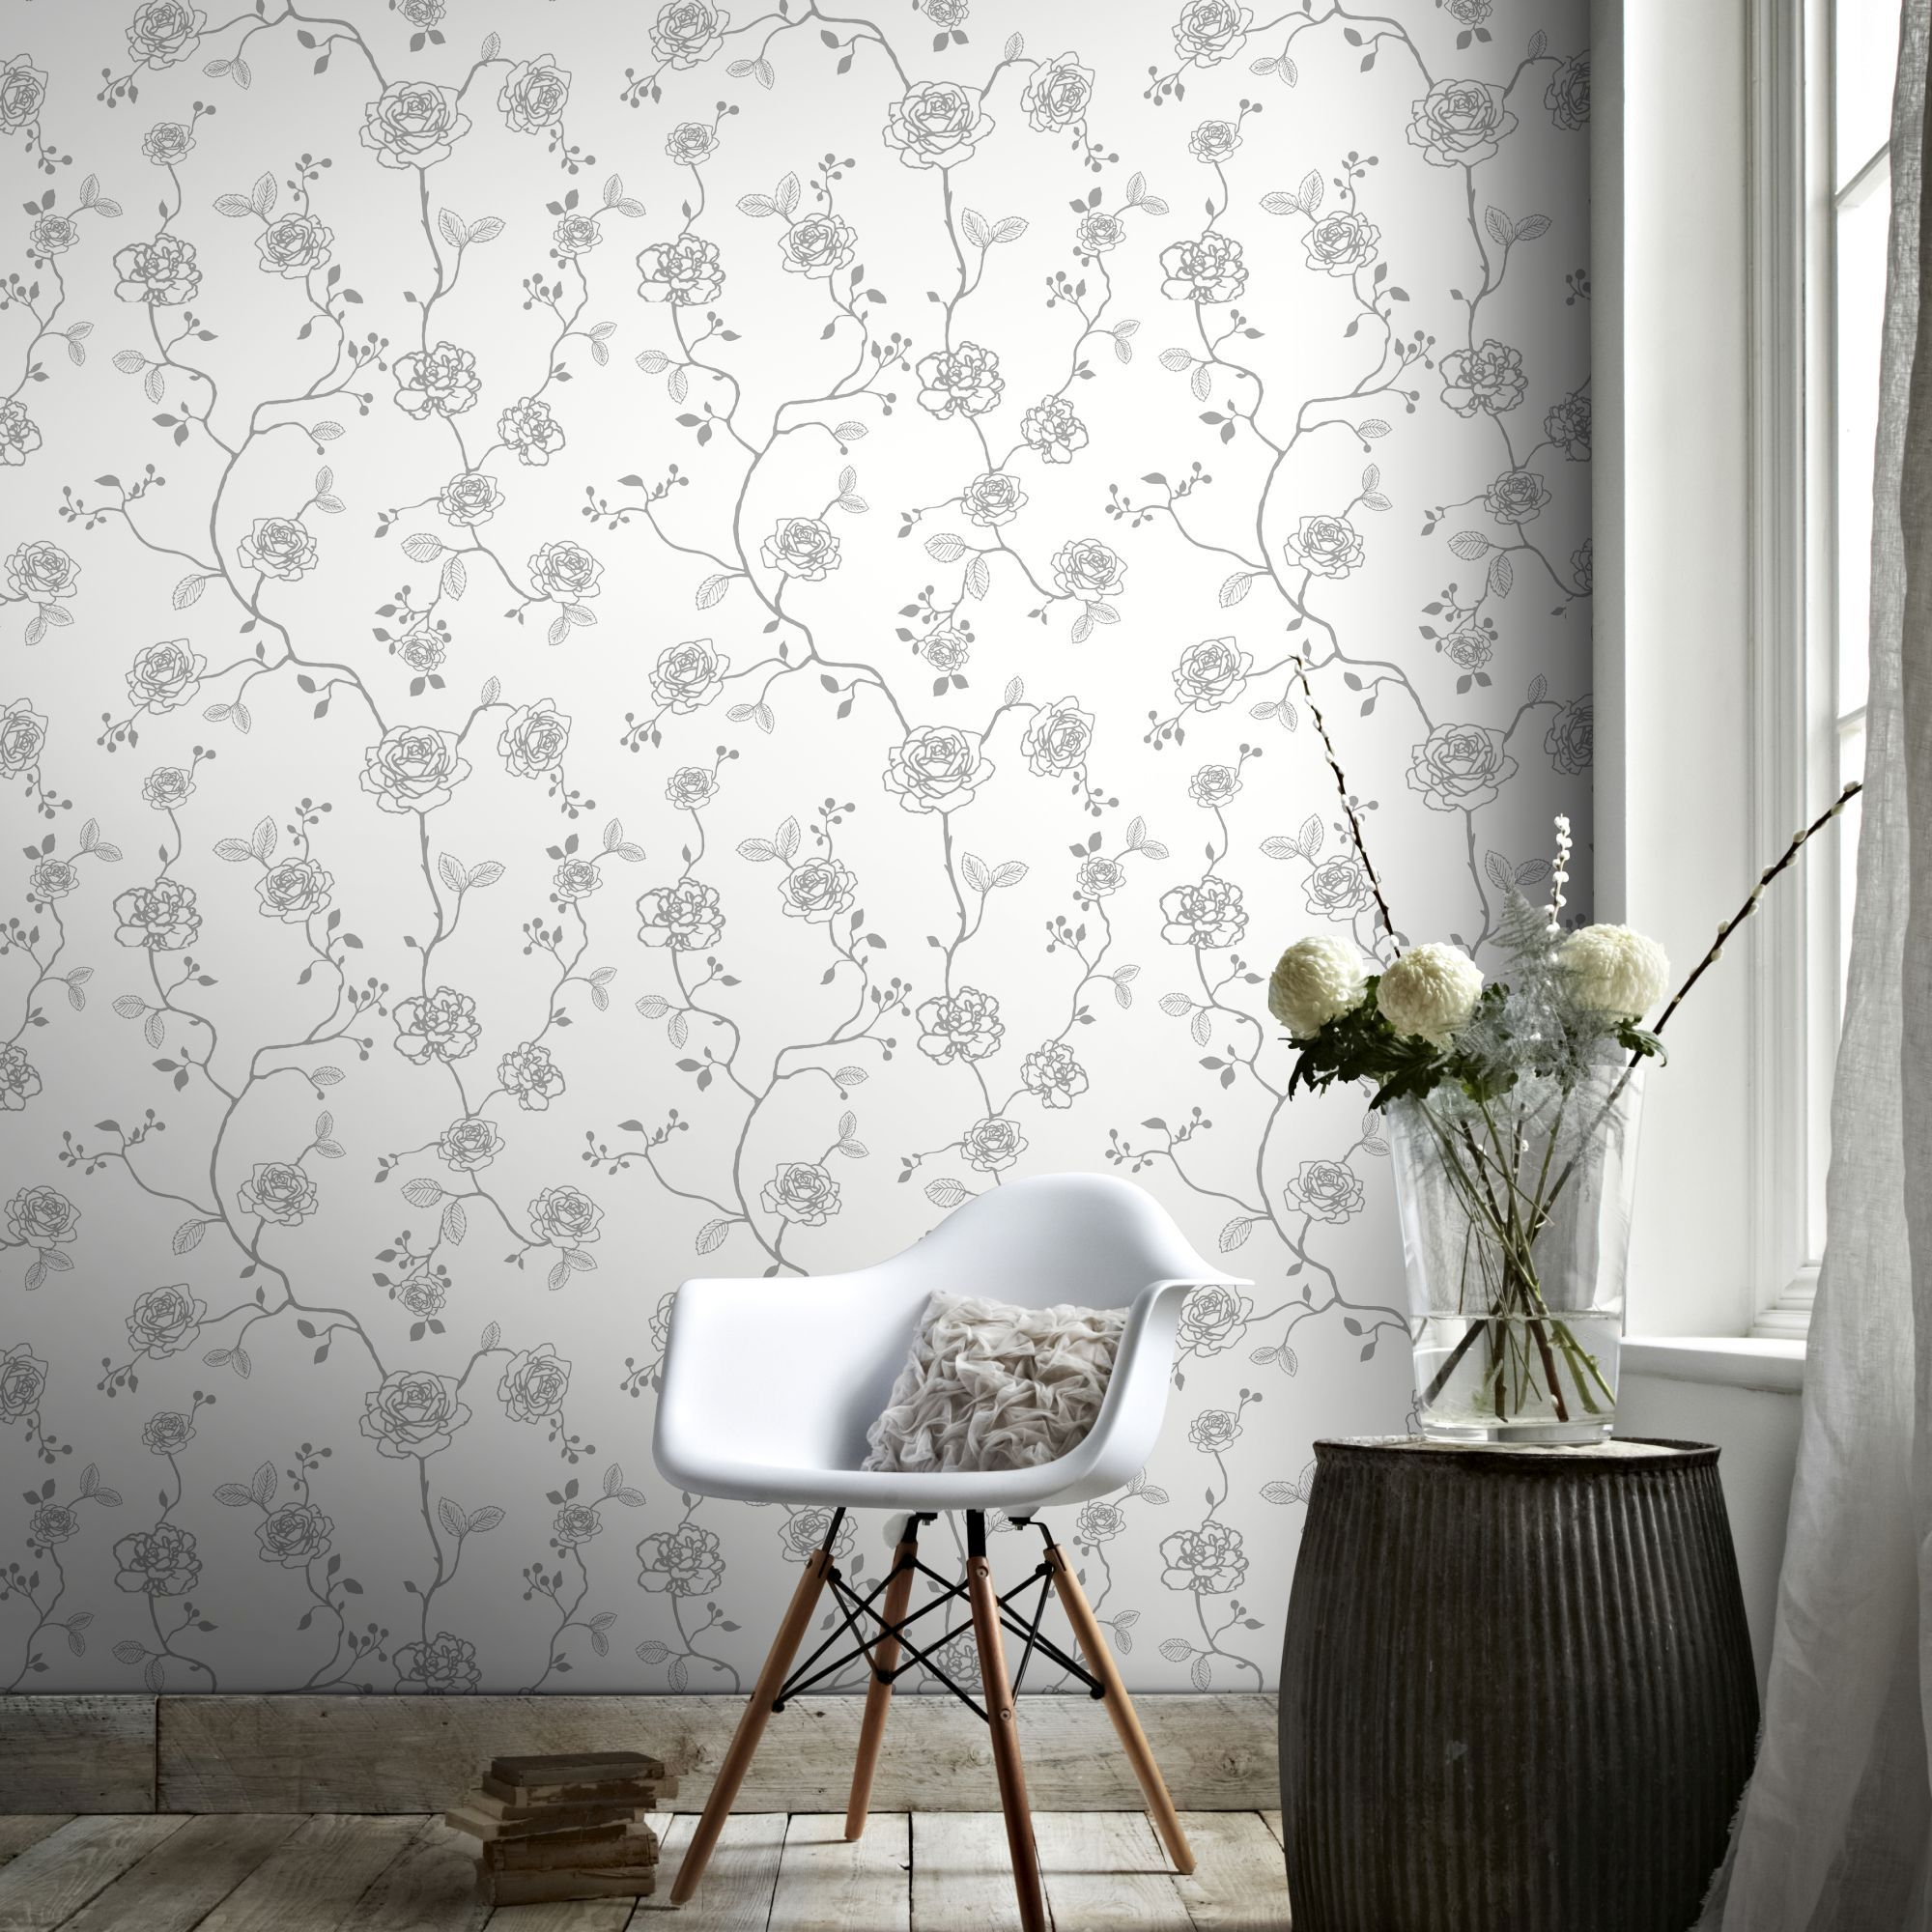 Superfresco Easy Paste The Wall Rose Silver Floral Wallpaper Ebay